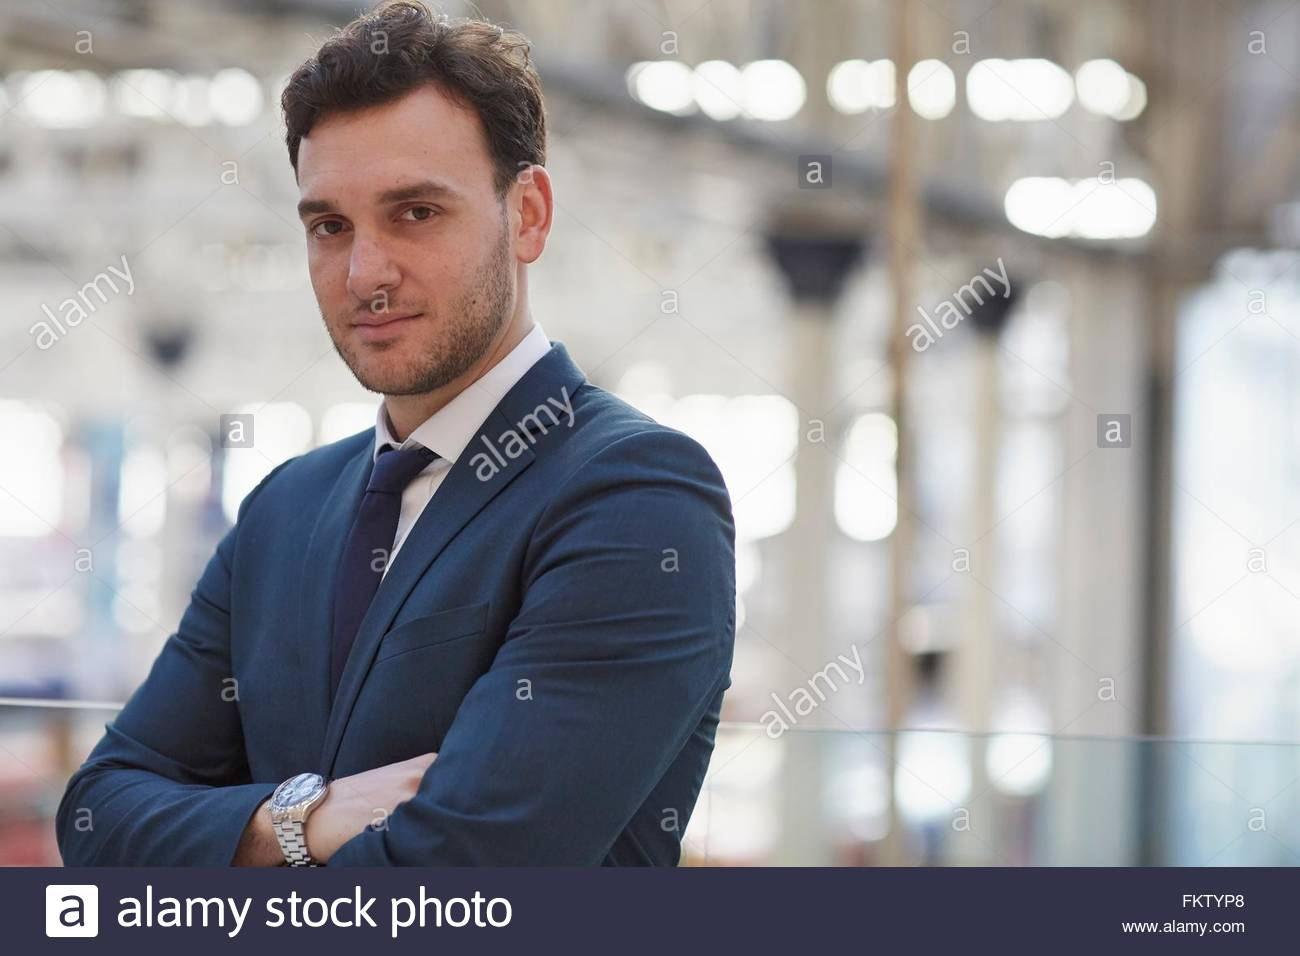 Businessman wearing suit, arms folded looking at camera smiling - Stock Image